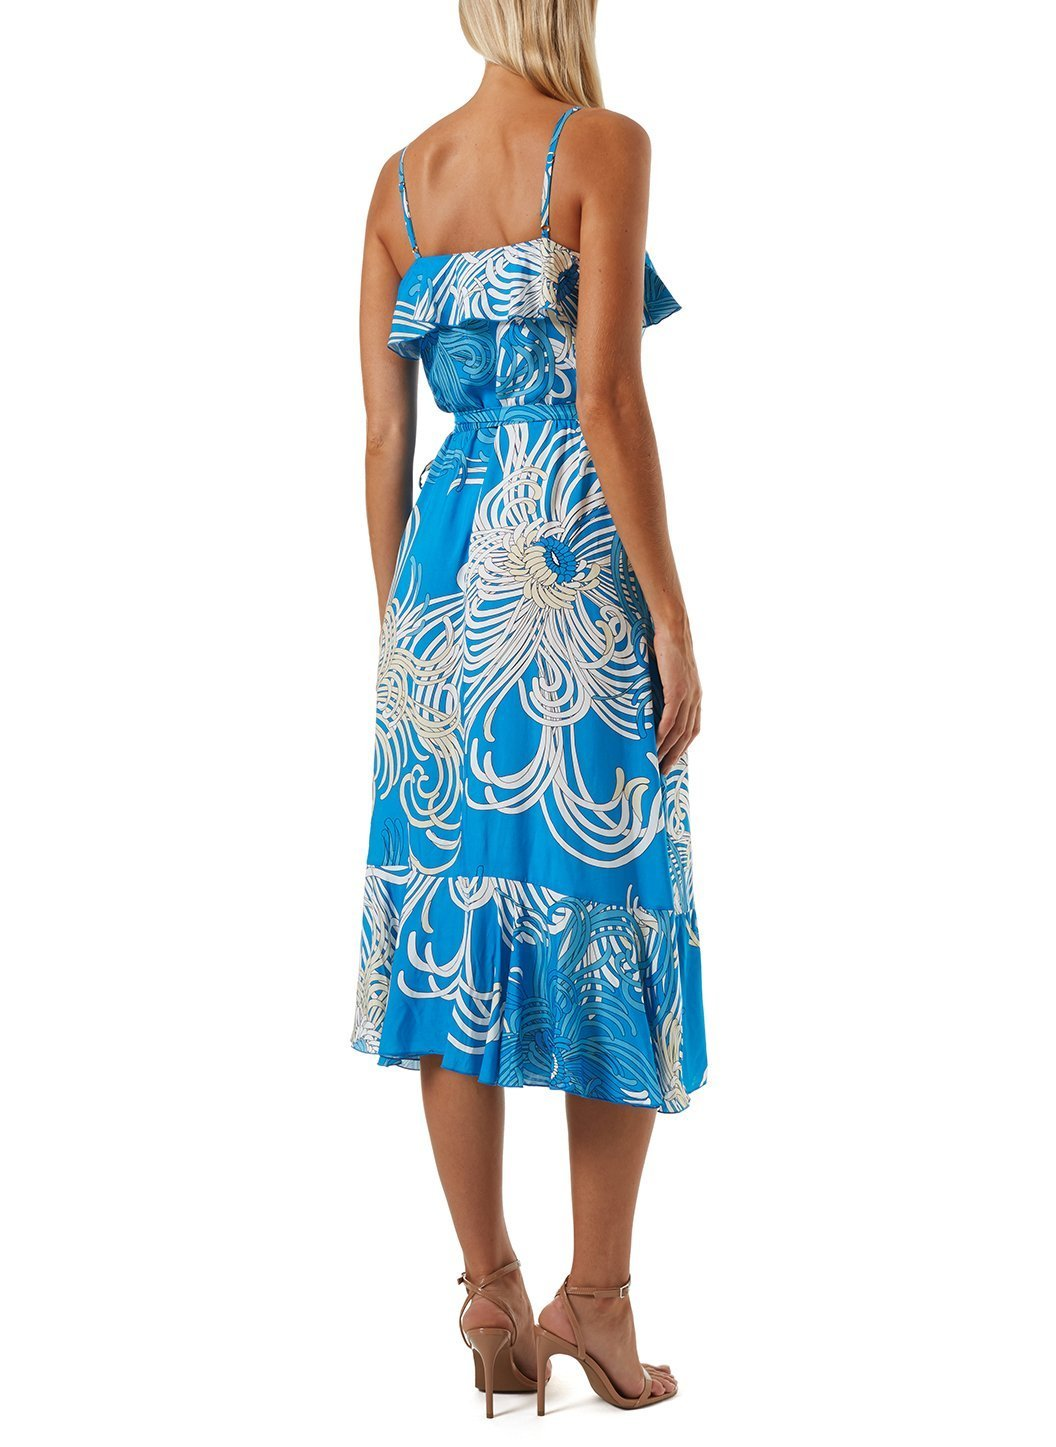 Kiwi Blue Swirl Dress